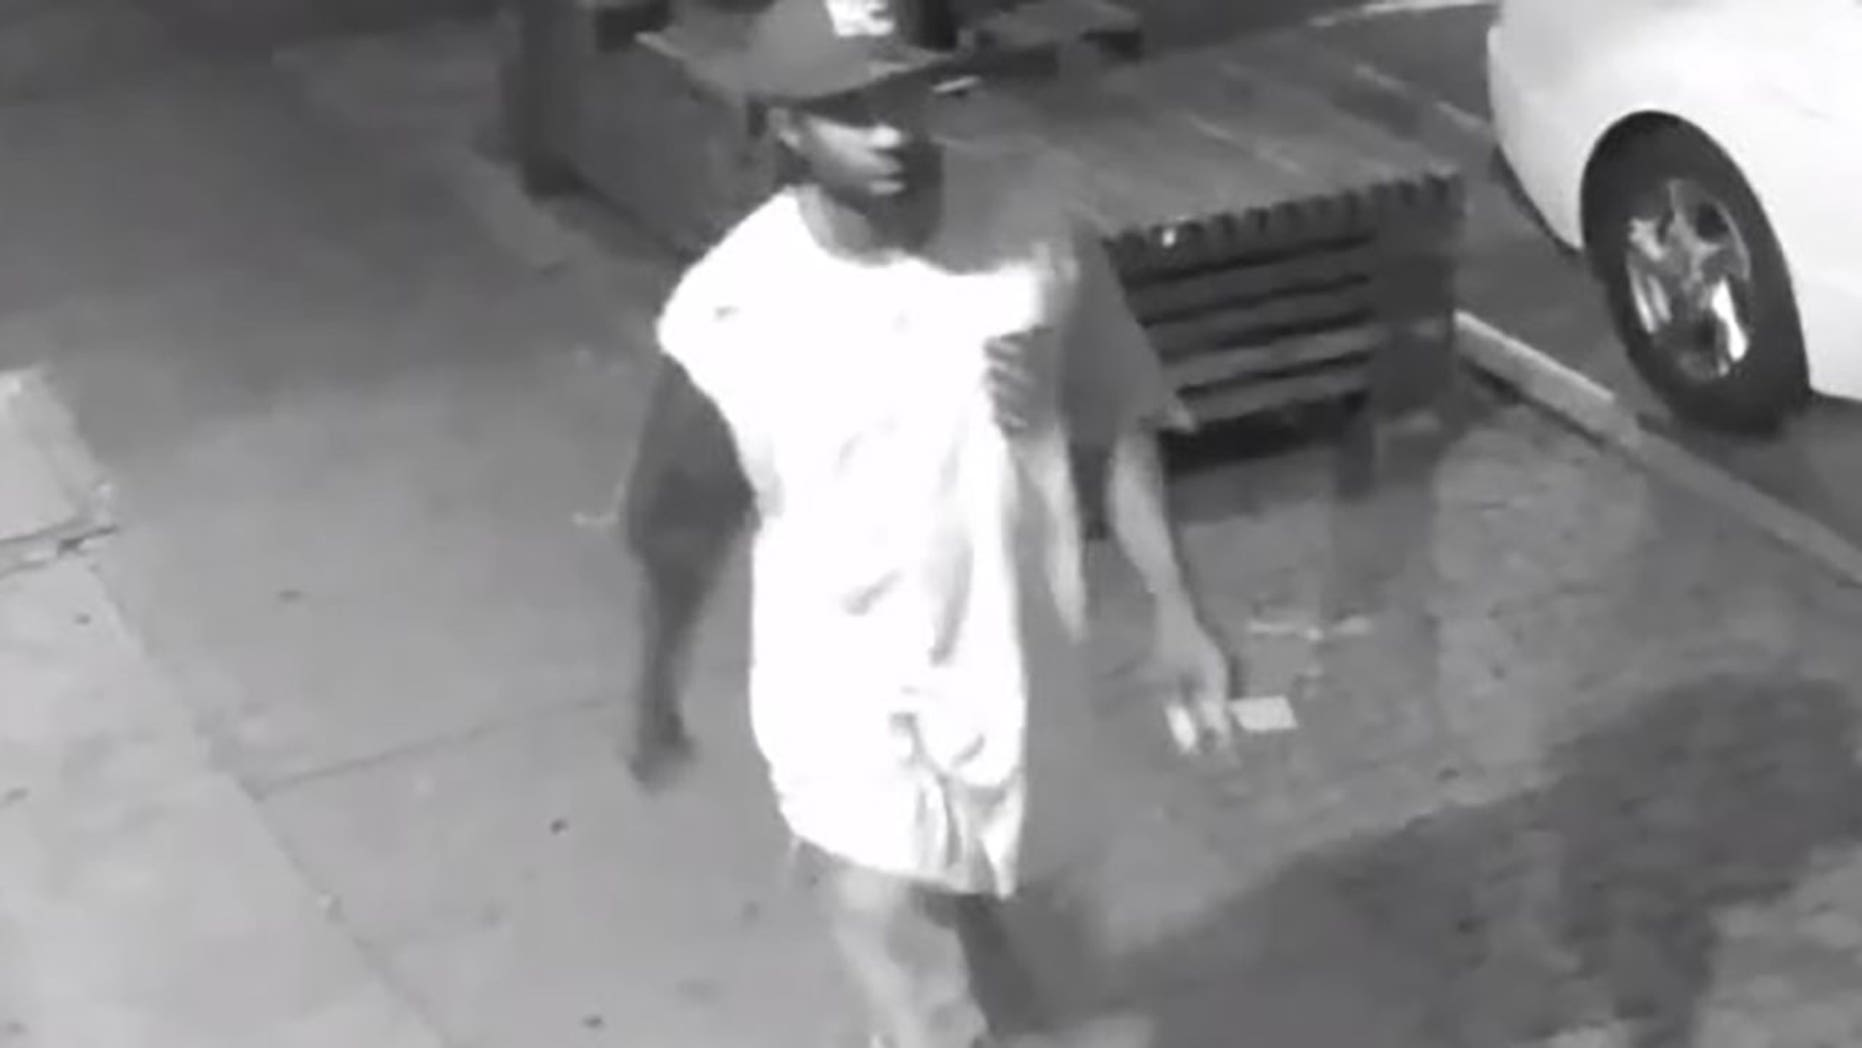 NYC woman fights off groper in brazen attack caught on camera